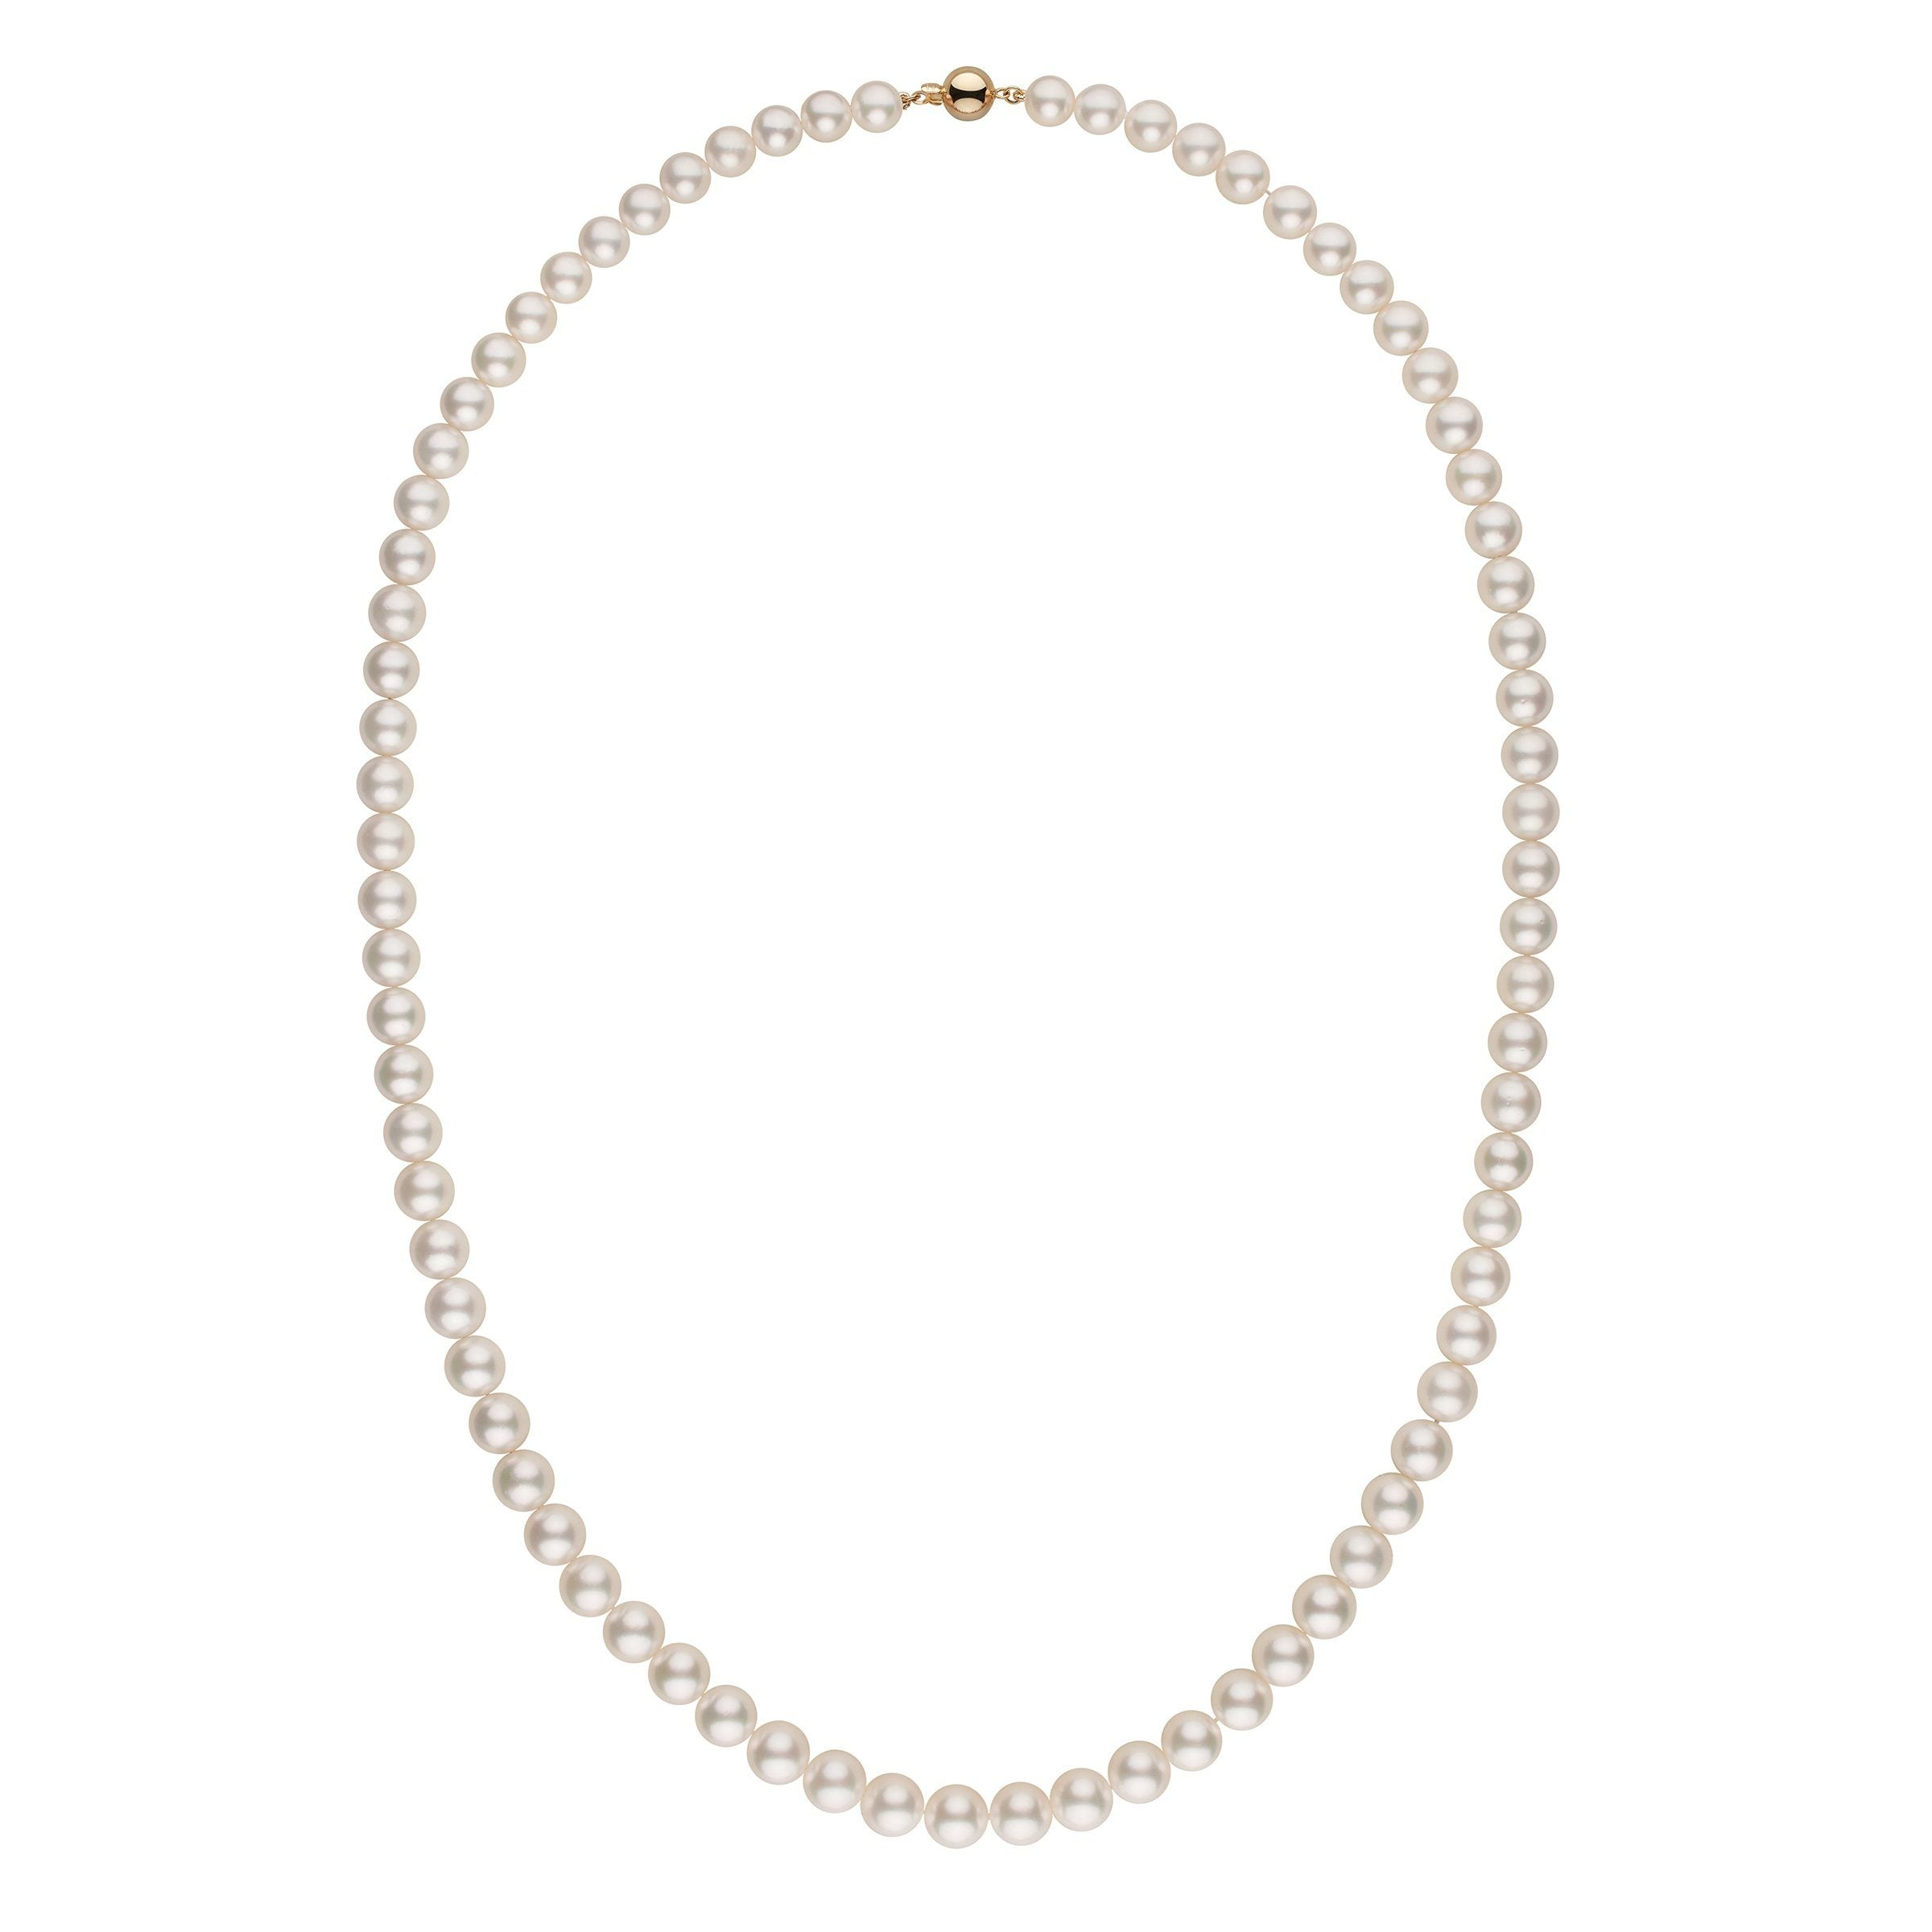 10.0-11.9 mm AA+/AAA White South Sea Round Pearl Necklace - 36 Inches